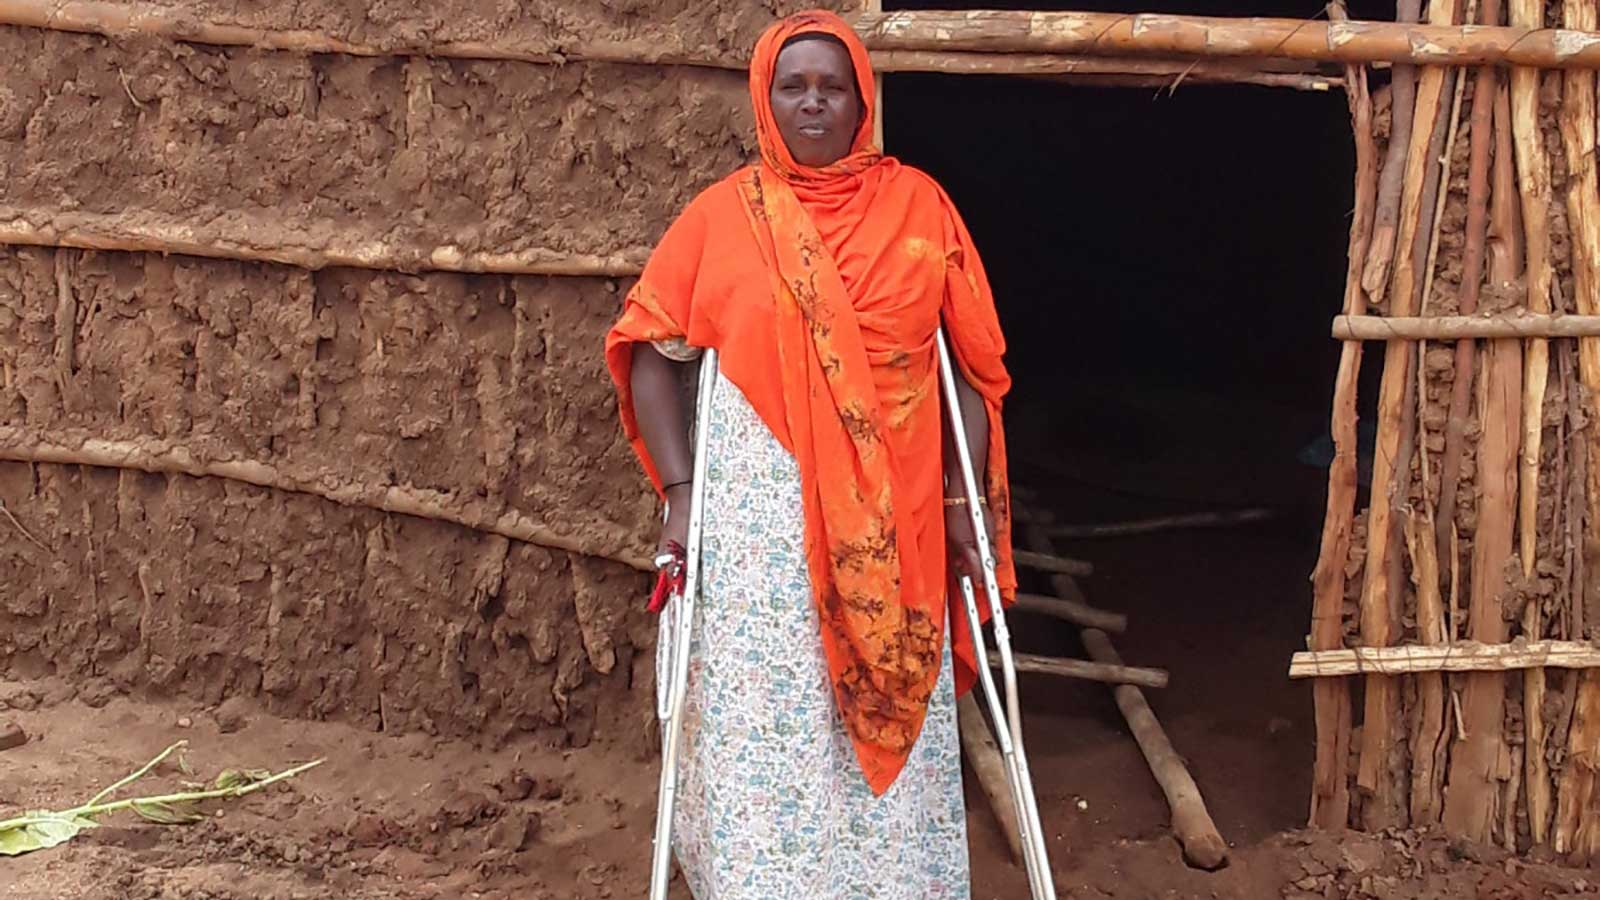 Meryam -40-year-old-mother-of-10 stands tall on her crutches in Ethiopia